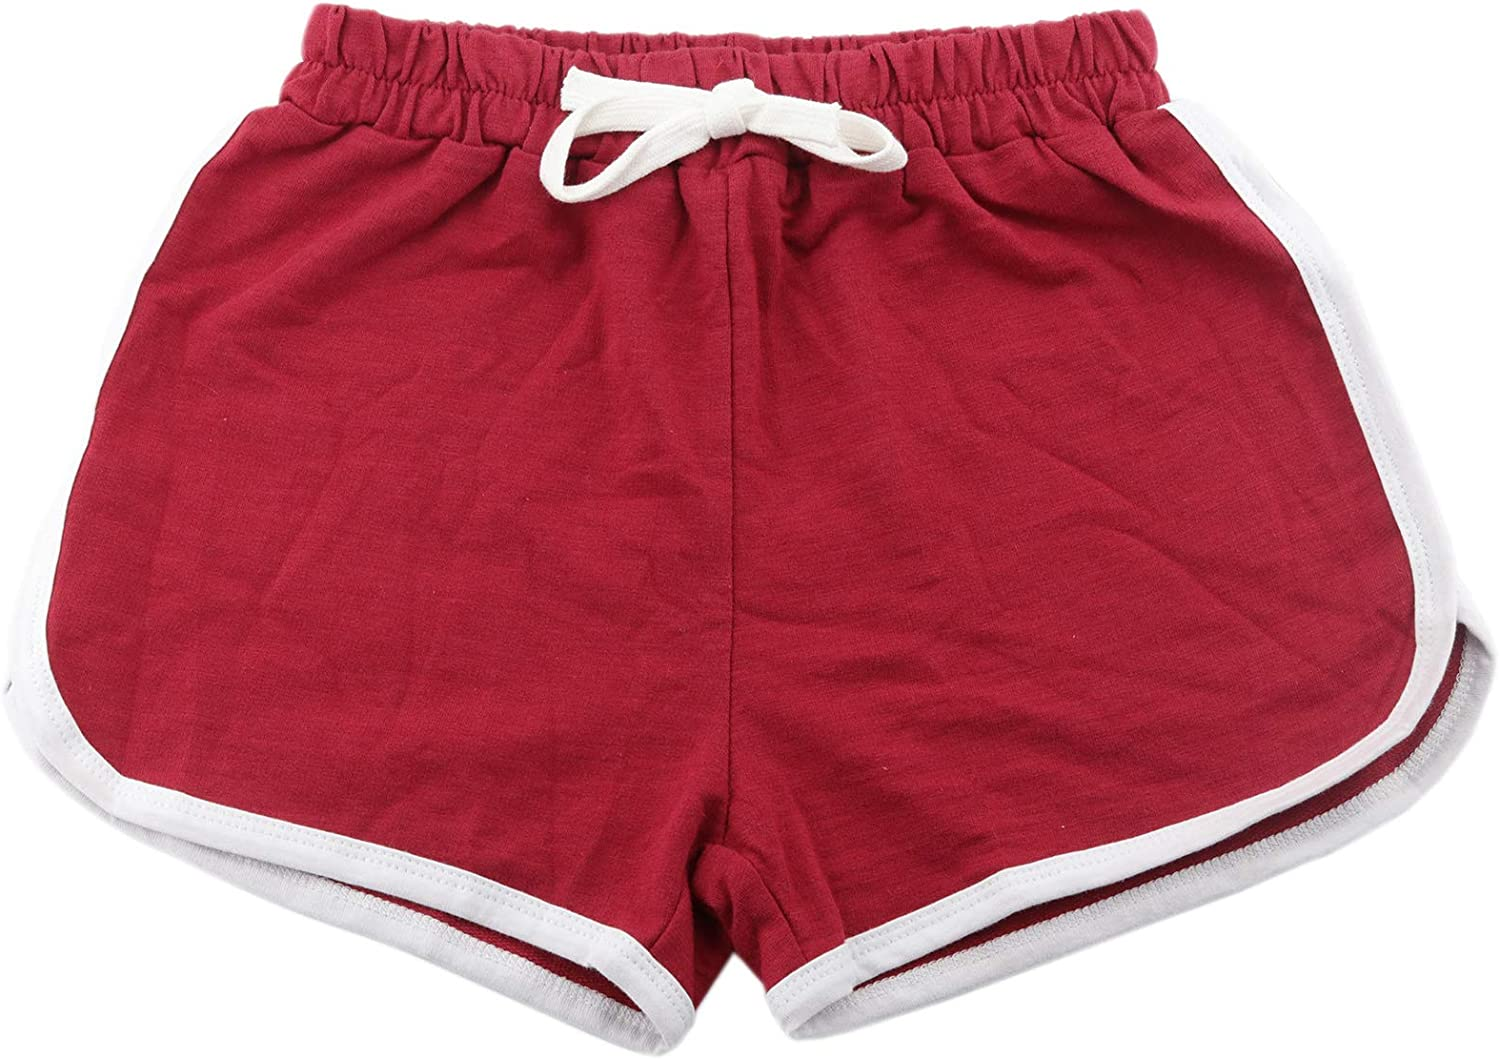 Soarsue Running Athletic Cotton Shorts Pure Cotton Short Pants for Toddler Kids Summer Beach Sports